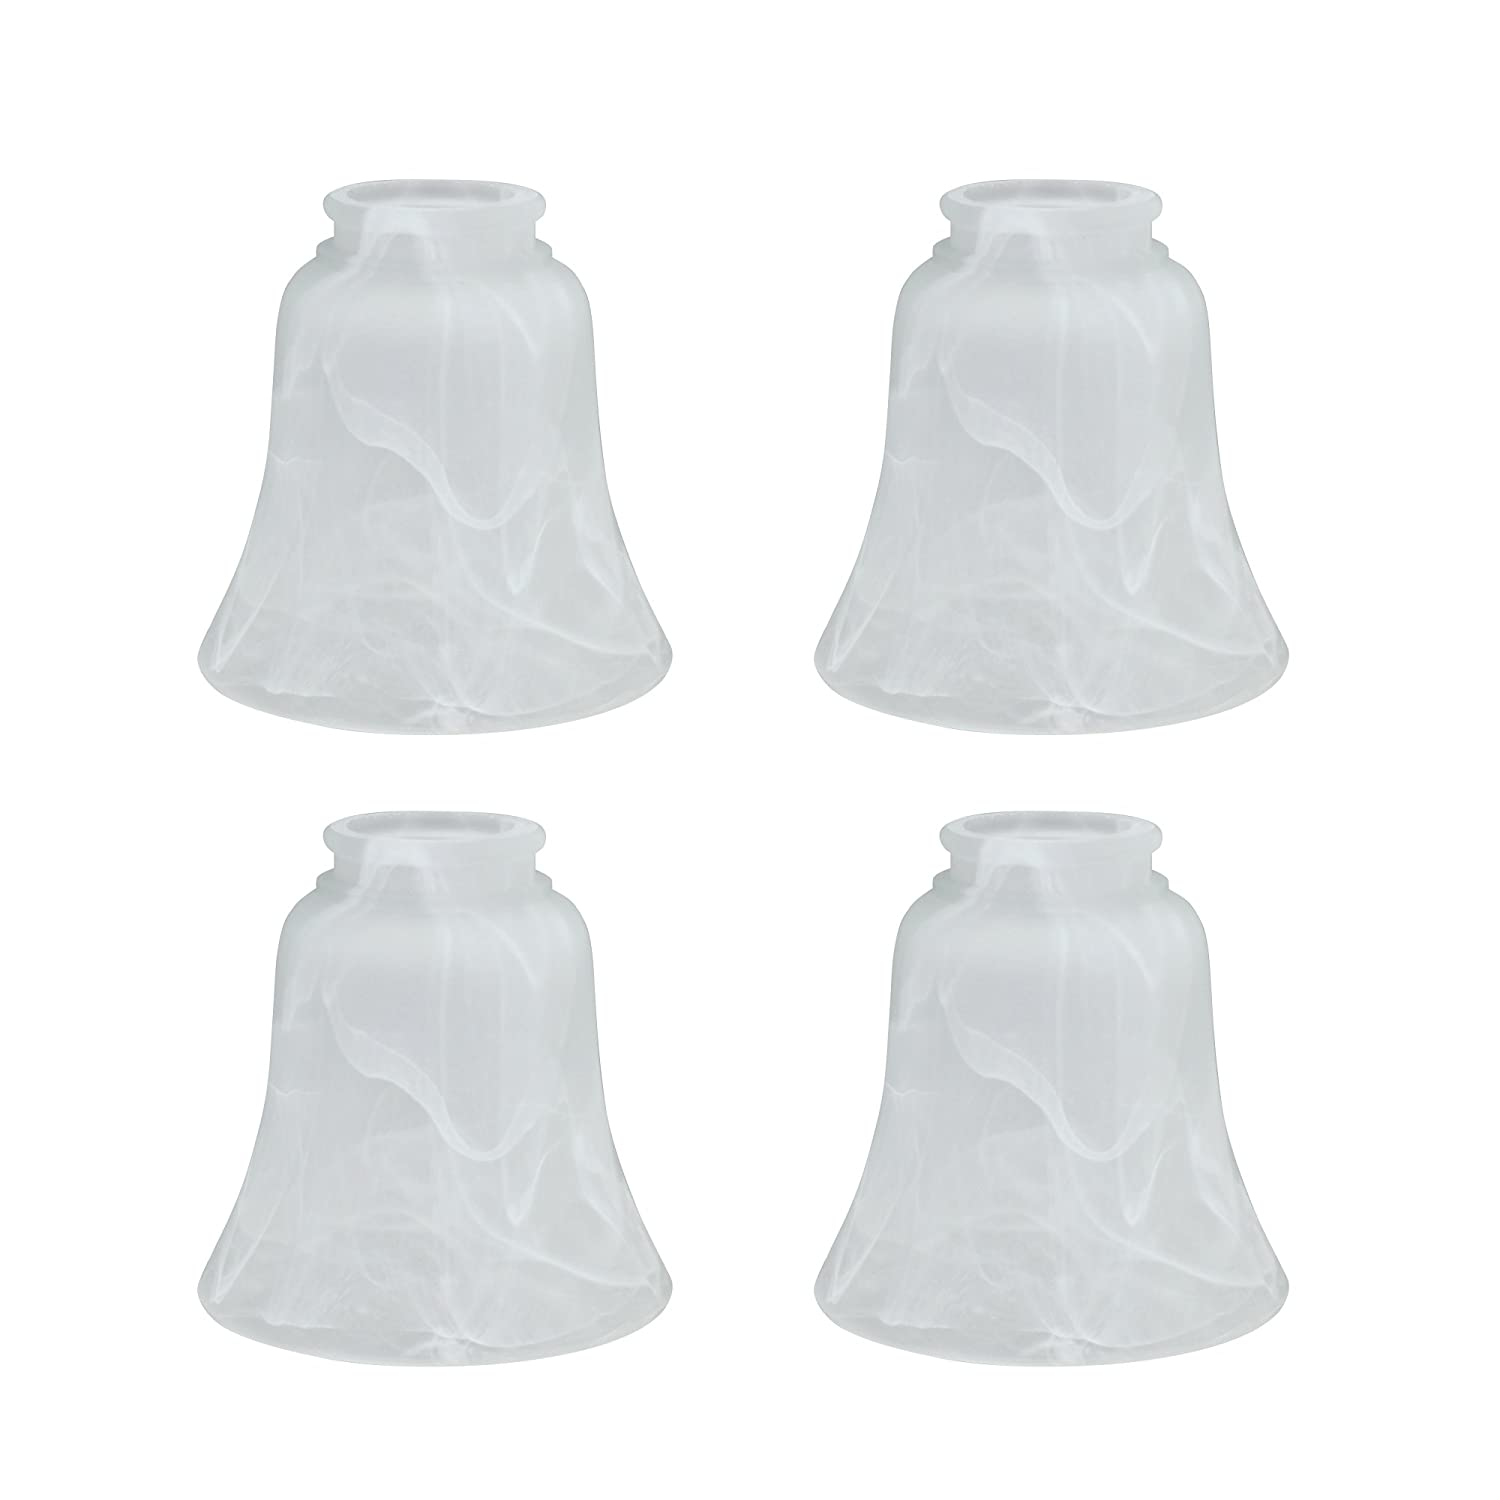 Alabaster Aspen Creative 23030-4 Transitional Style Replacement Bell Shaped Glass Shade 4 Pack 4 3//4 high x 4 3//4 Diameter